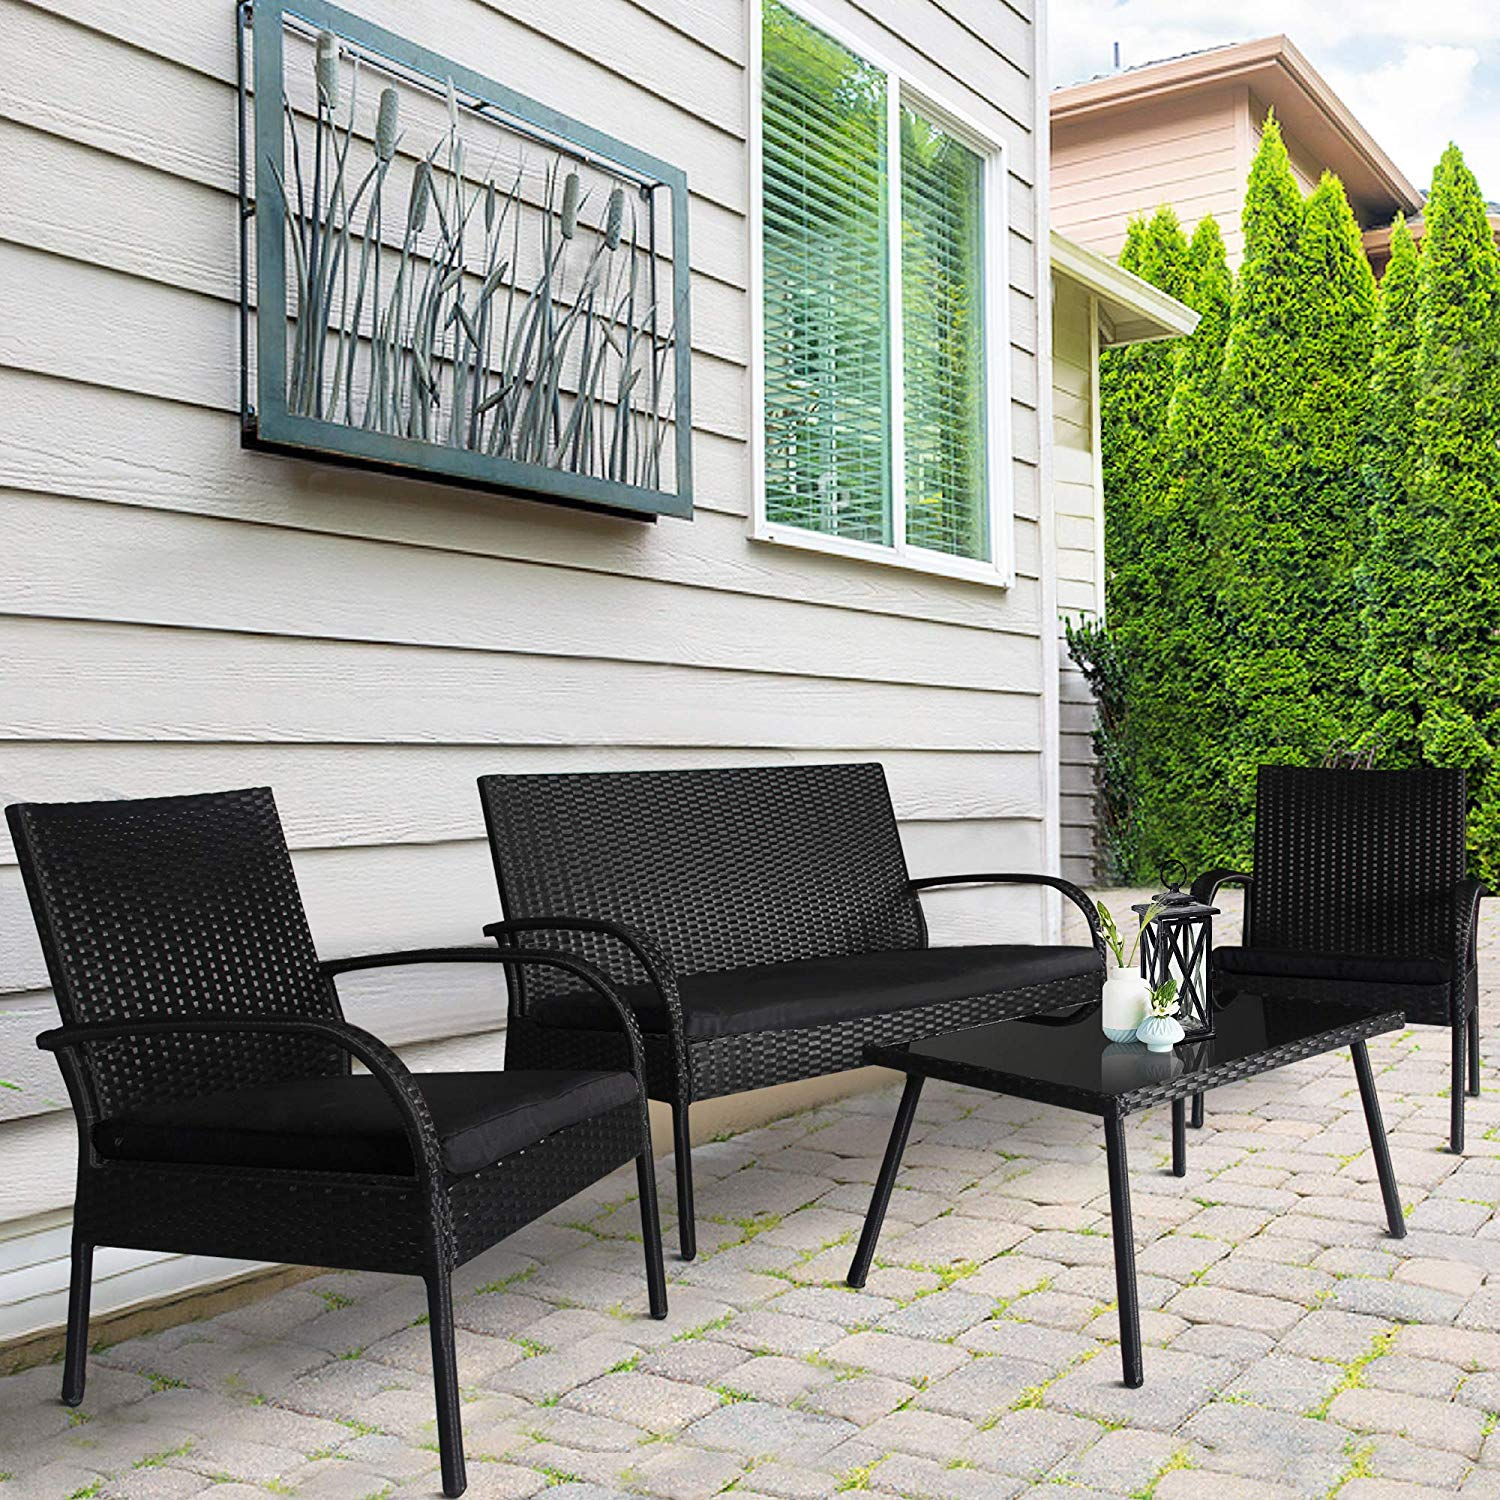 black rattan chair ice cream chairs for sale cheap singapore find deals on get quotations homevibes 4 pieces outdoor patio furniture sets garden conversation set backyard wicker sofa